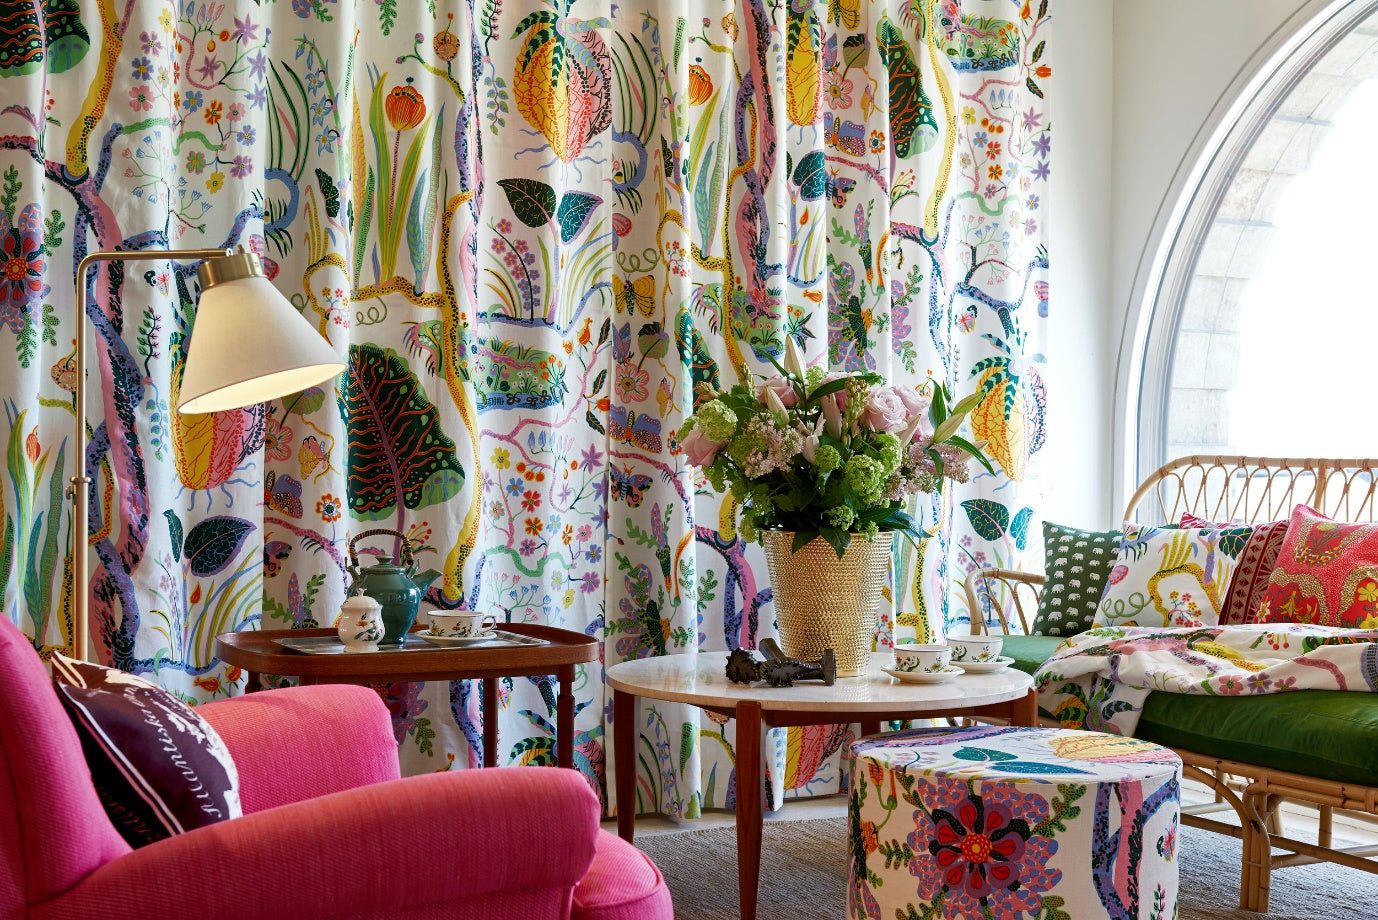 josef frank how to choose drapery hardware